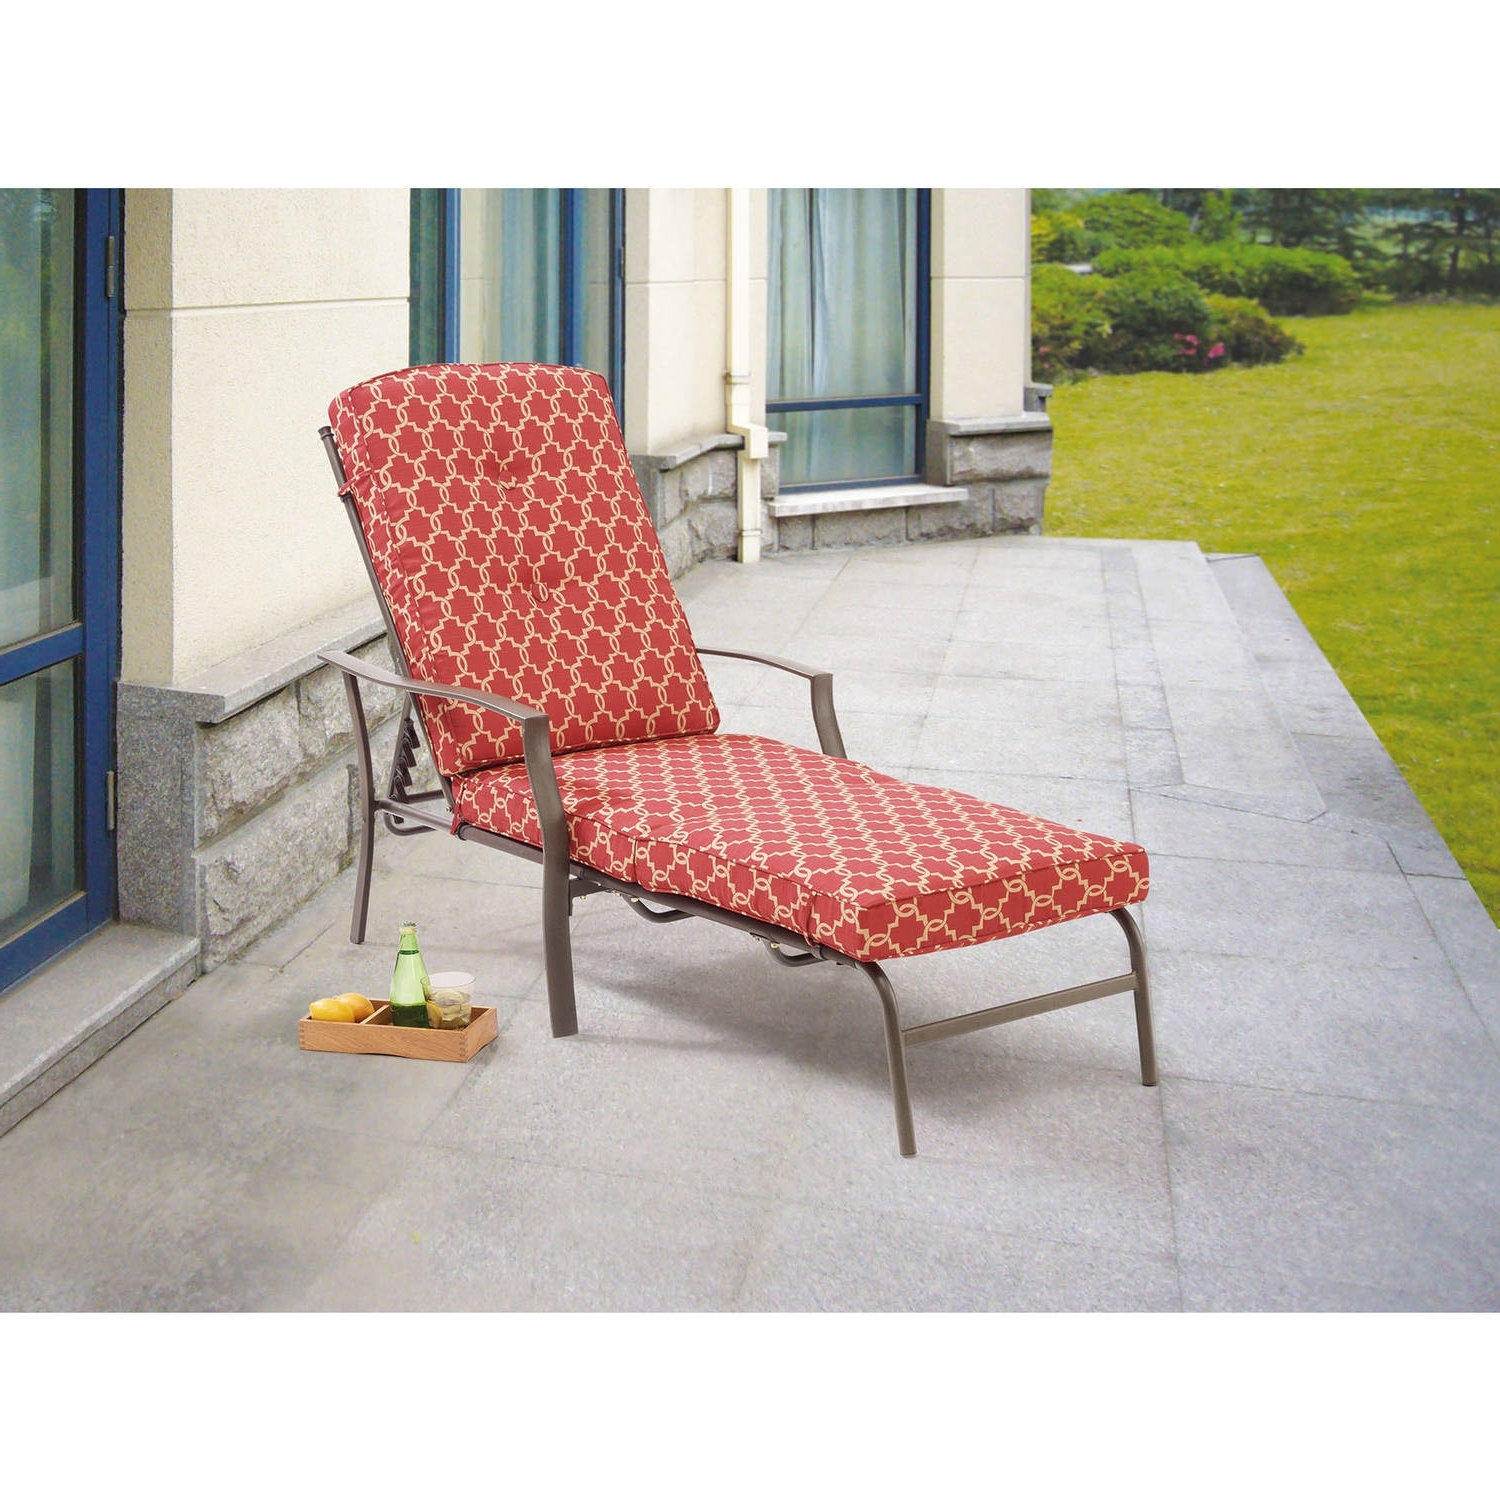 Outdoor Chaise Lounge Chairs At Walmart With Best And Newest Cosco Outdoor Adjustable Aluminum Chaise Lounge Chair Serene Ridge (View 6 of 15)